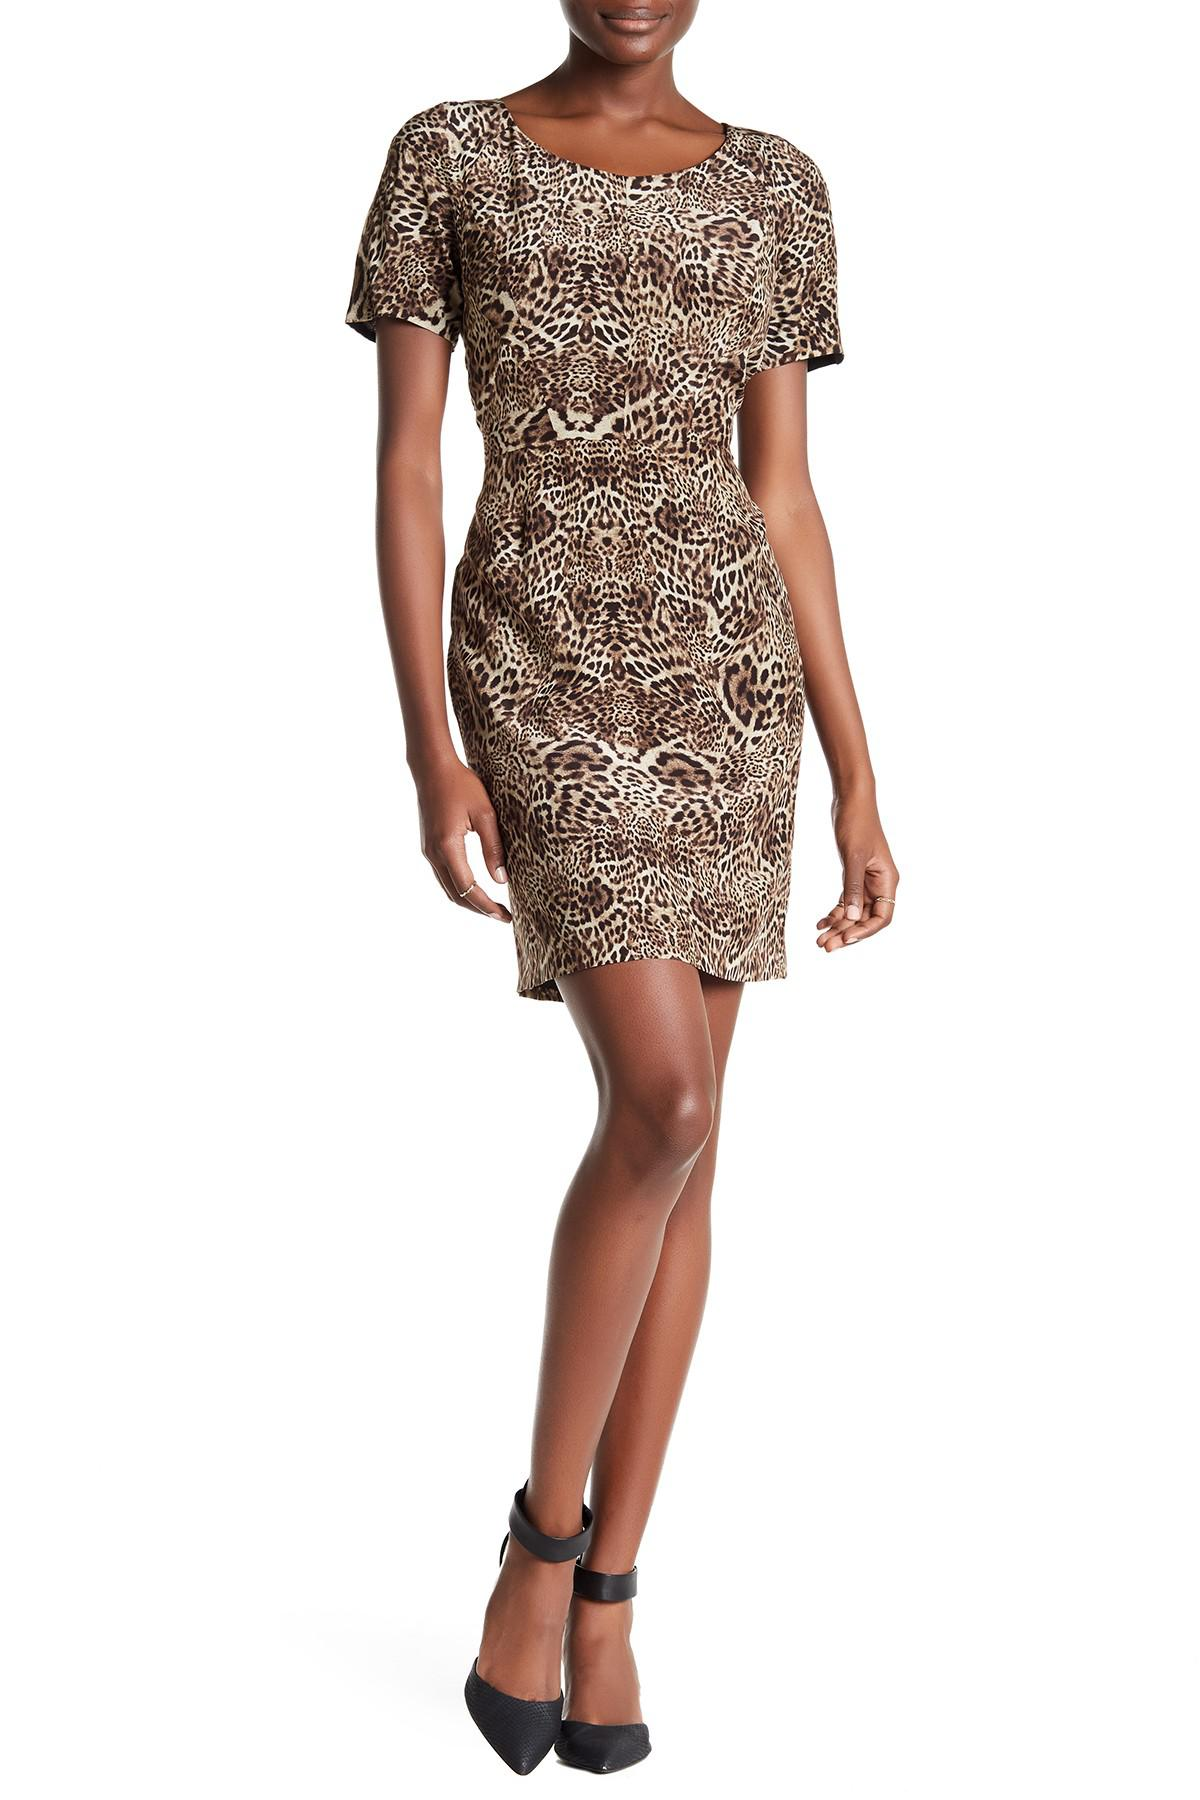 The Kooples. Women's Short Sleeve Silk Leopard Print Dress